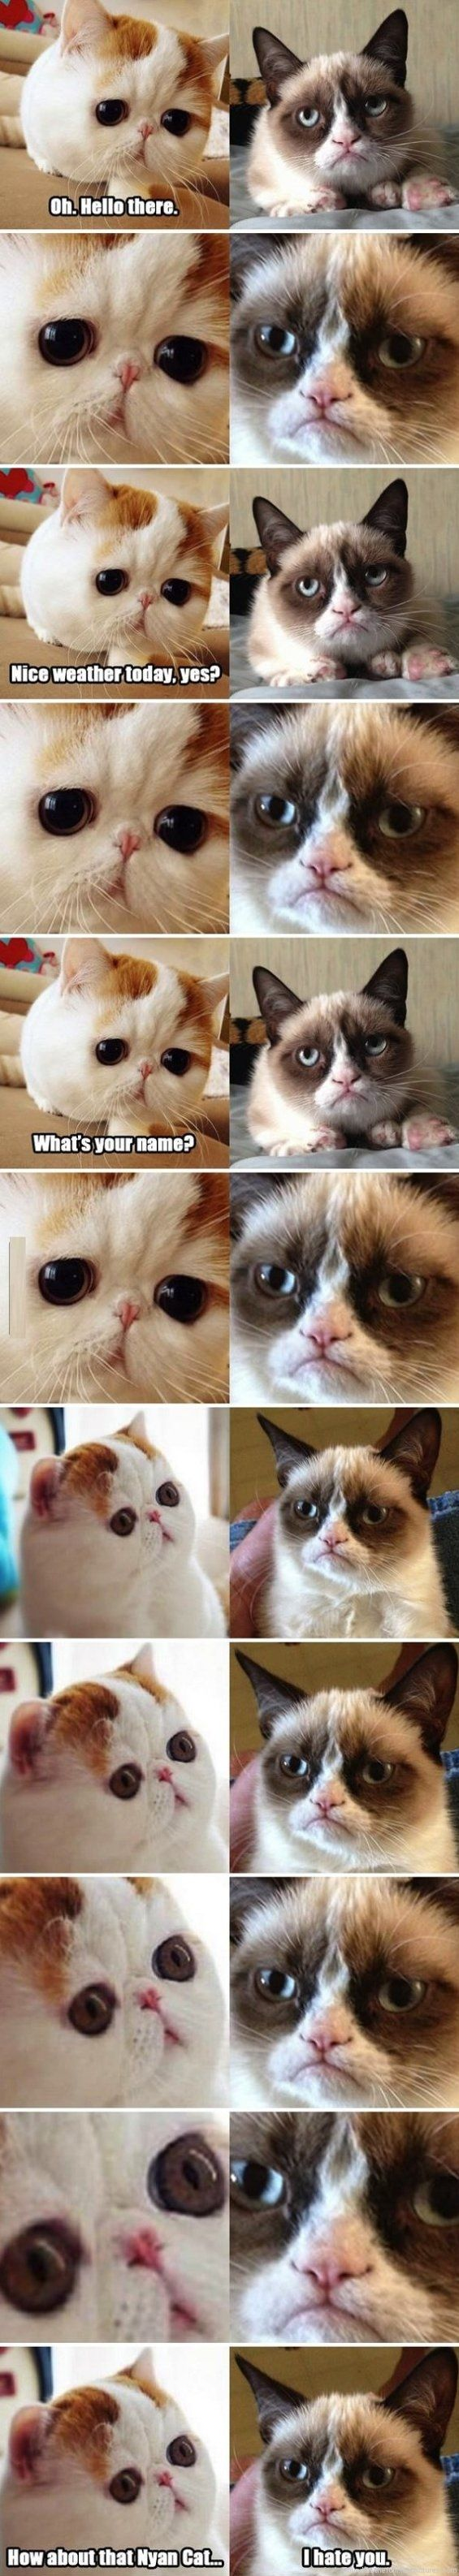 Snoopy Cat Meets Grumpy Cat.... How I feel when I talk to arlene hahahahah! @Arlene Nguyen @Nancy Lam @Jessica Phan